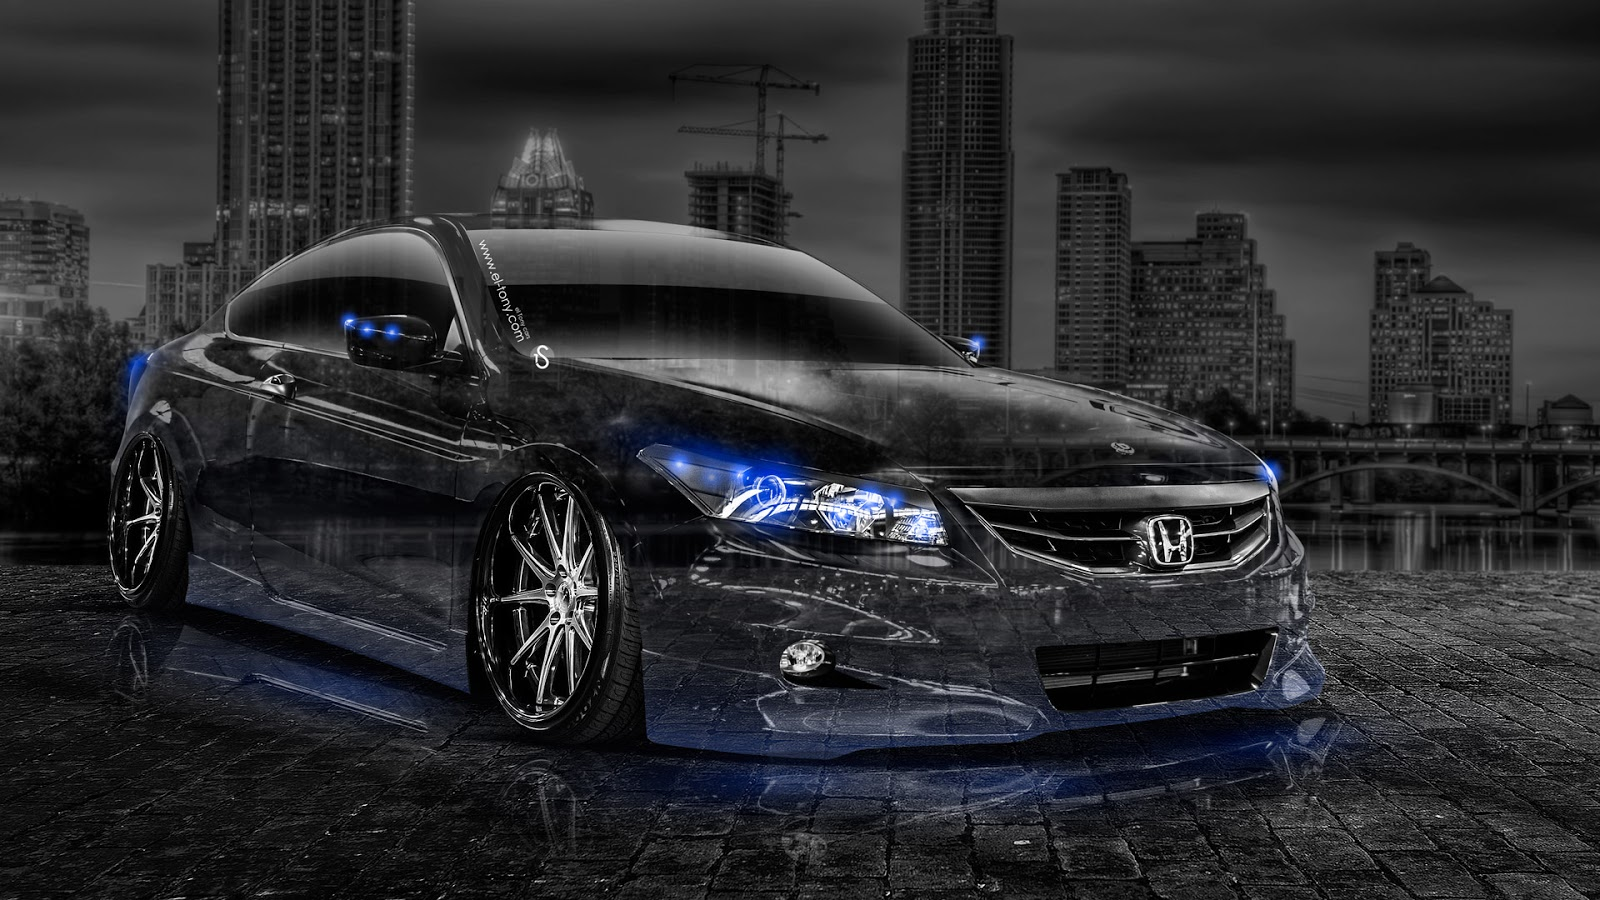 Honda City Price in India Pictures,images,wallpaper and ...